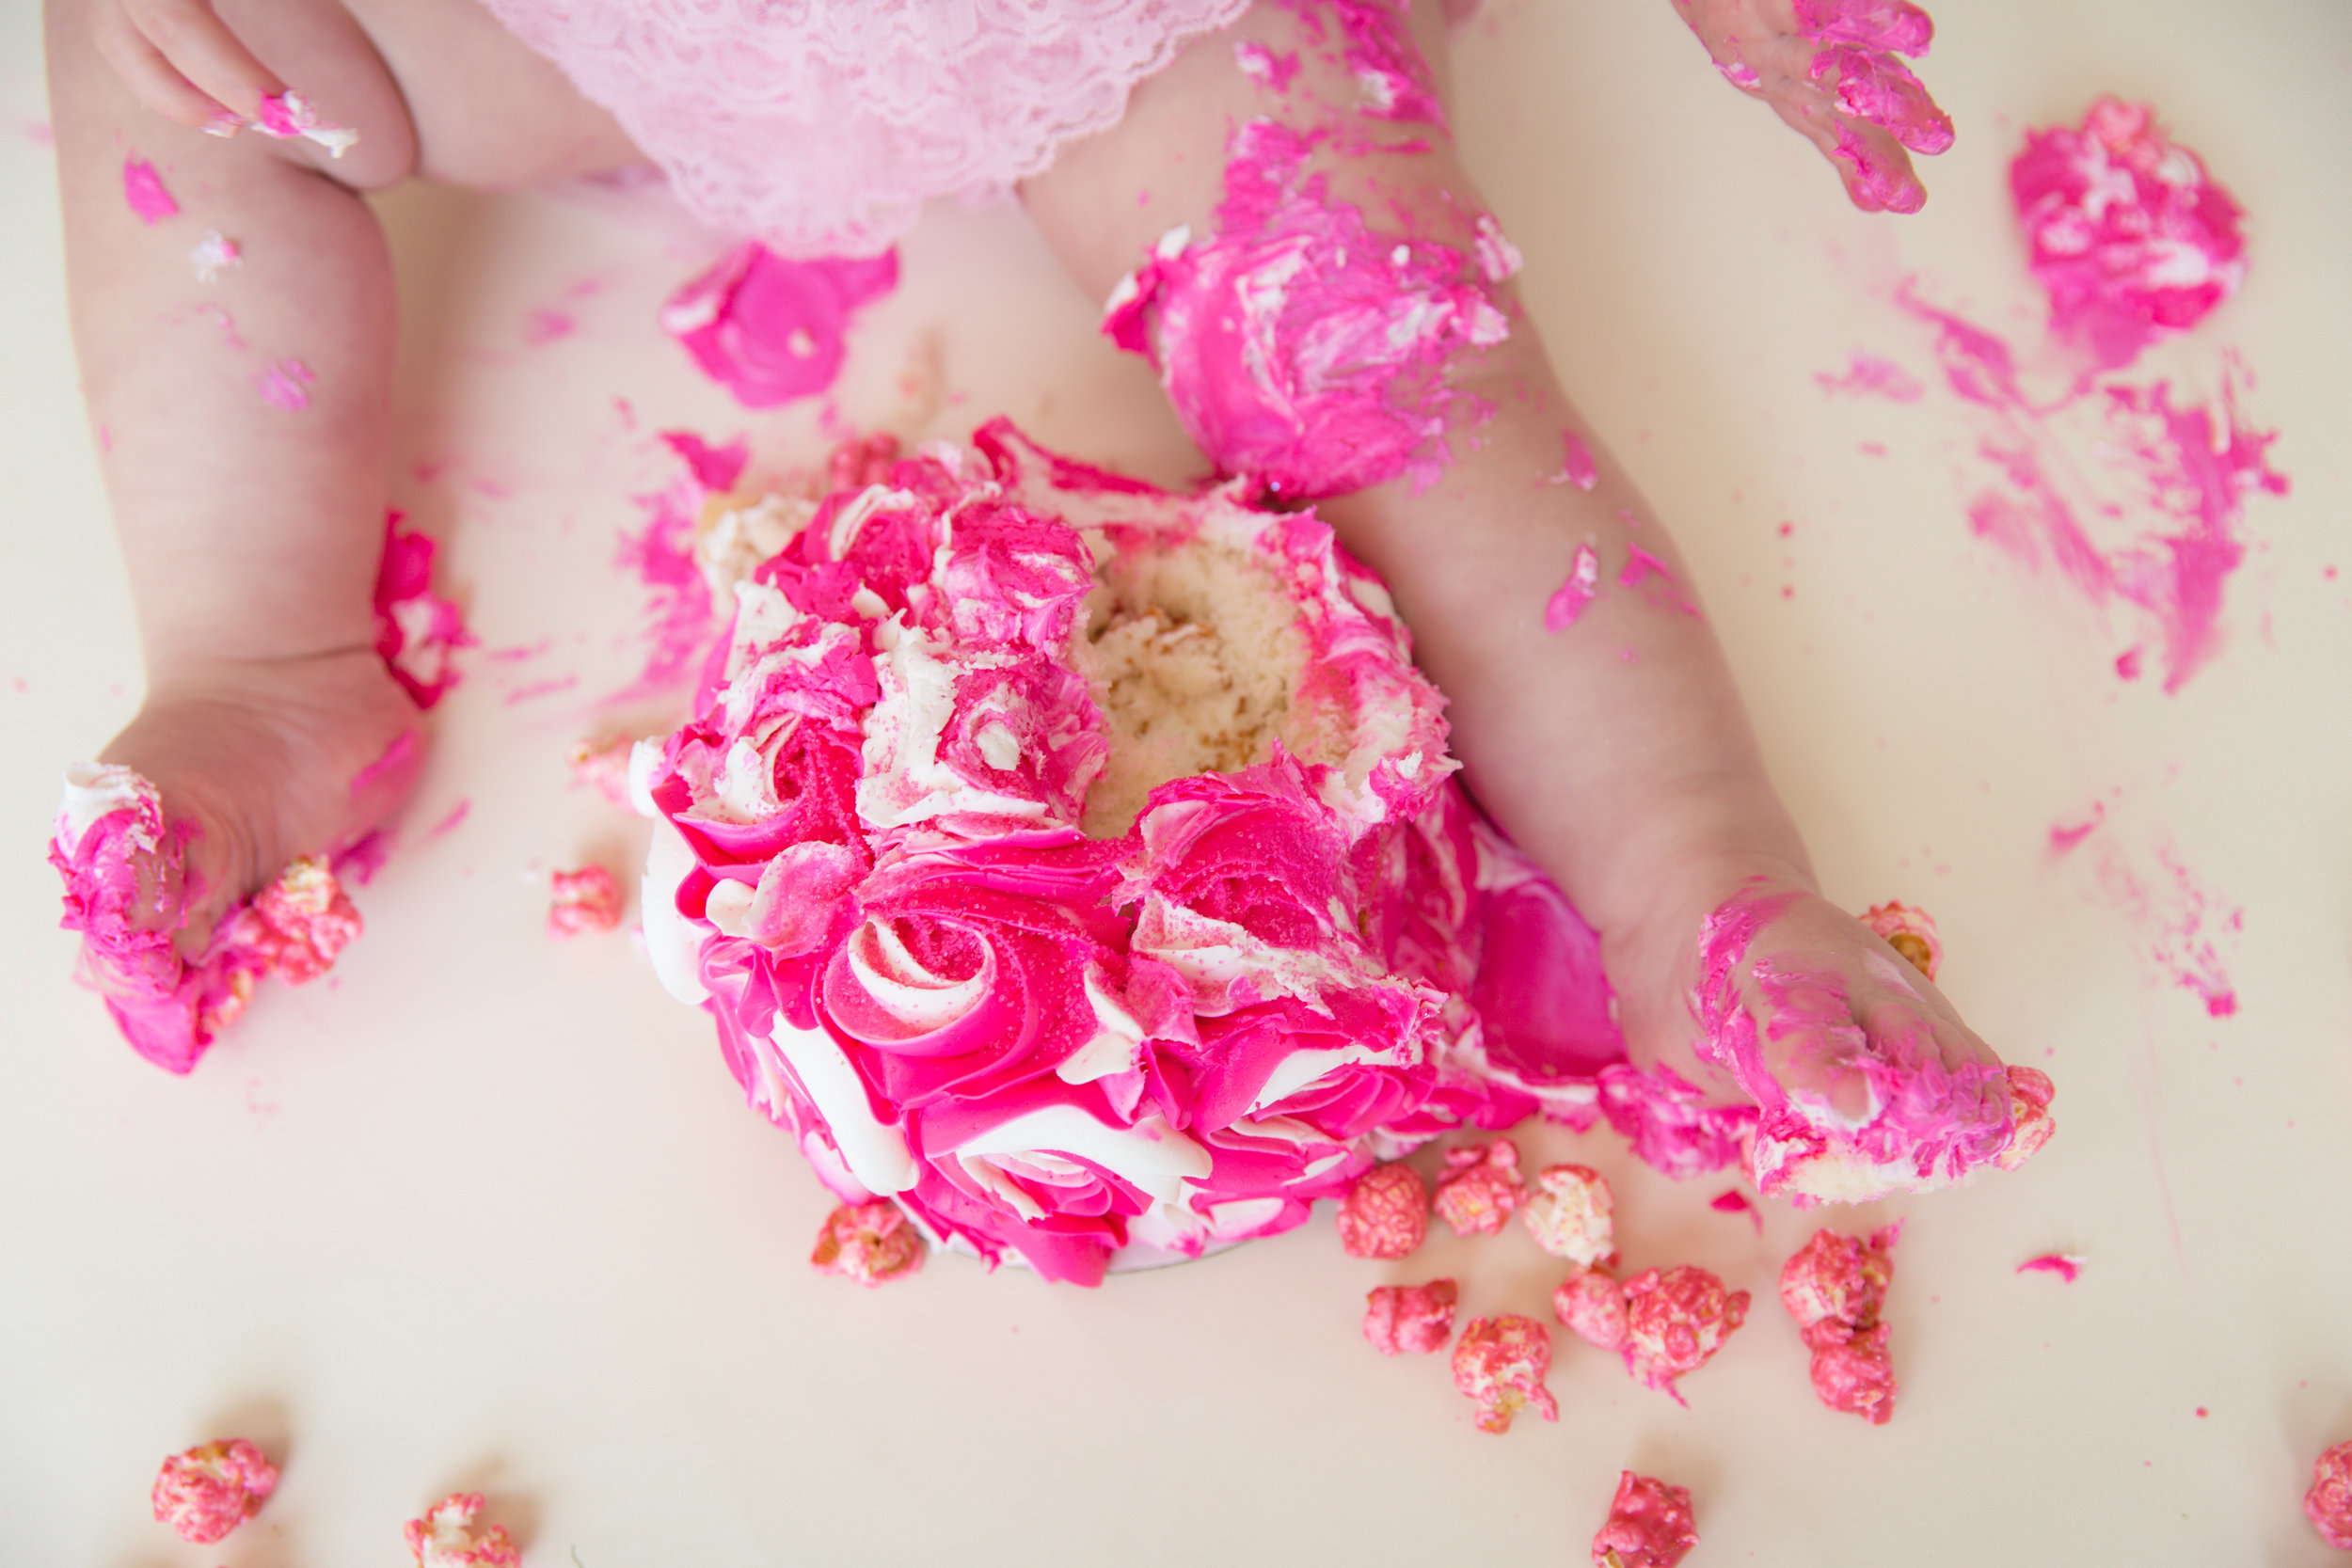 Little feet covered in cake and pink icing. Calgary cakesmash photographer. Milashka photography.